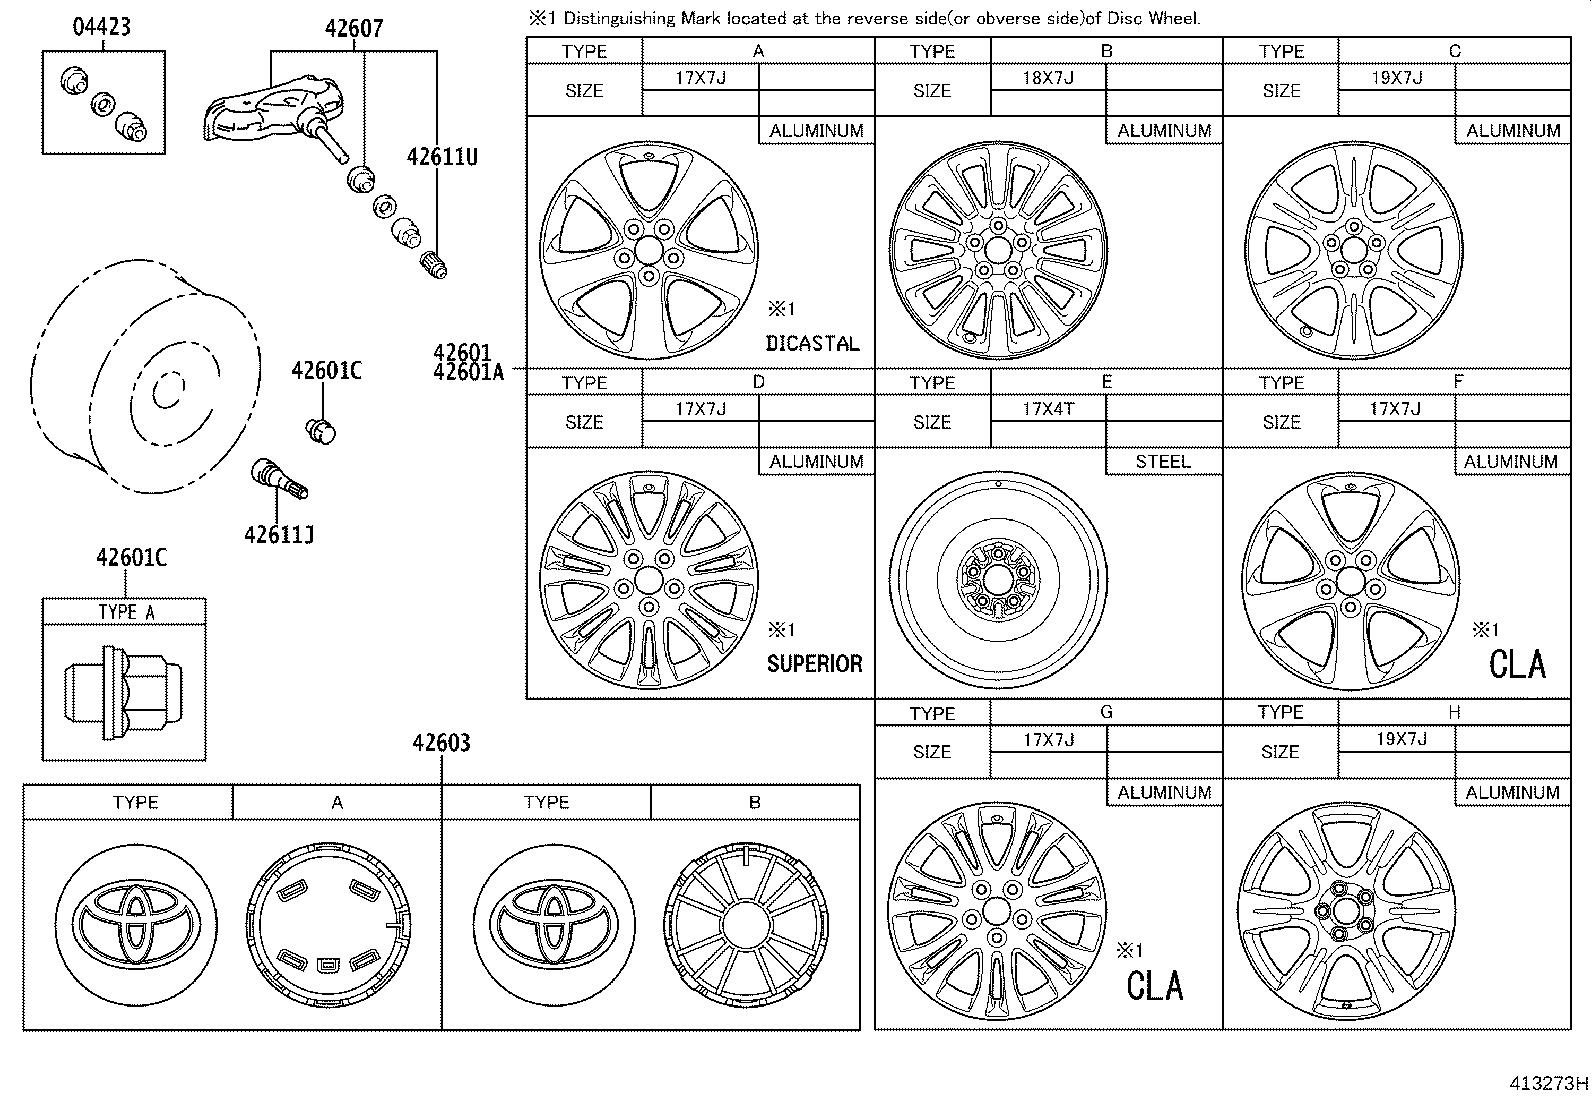 Diagram DISC WHEEL & WHEEL CAP for your 2014 Toyota Sienna